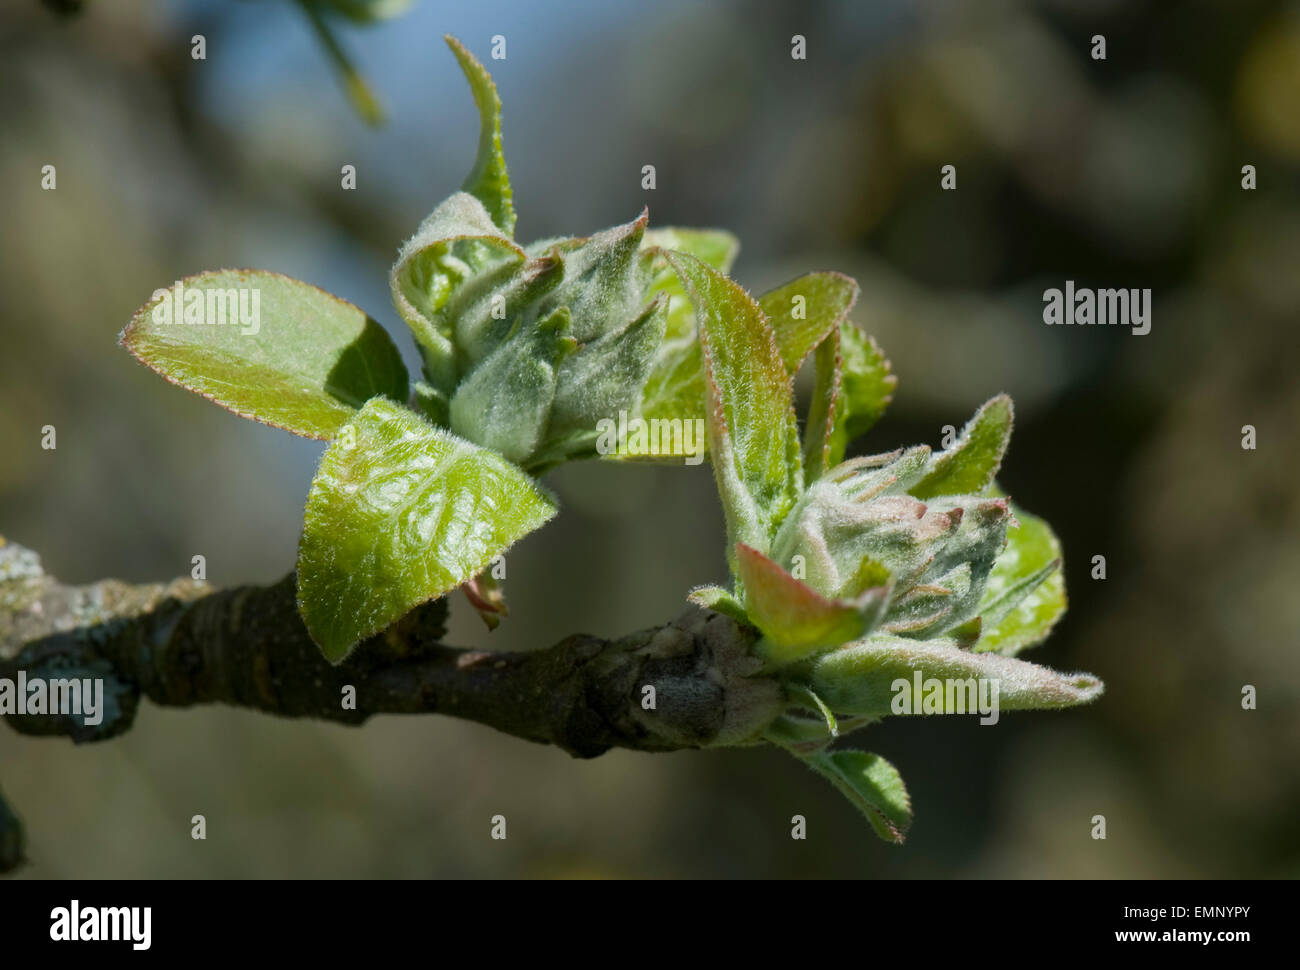 Green apple buds of flowers and leaves, green cluster, opening in spring sunshine on the tree - Stock Image